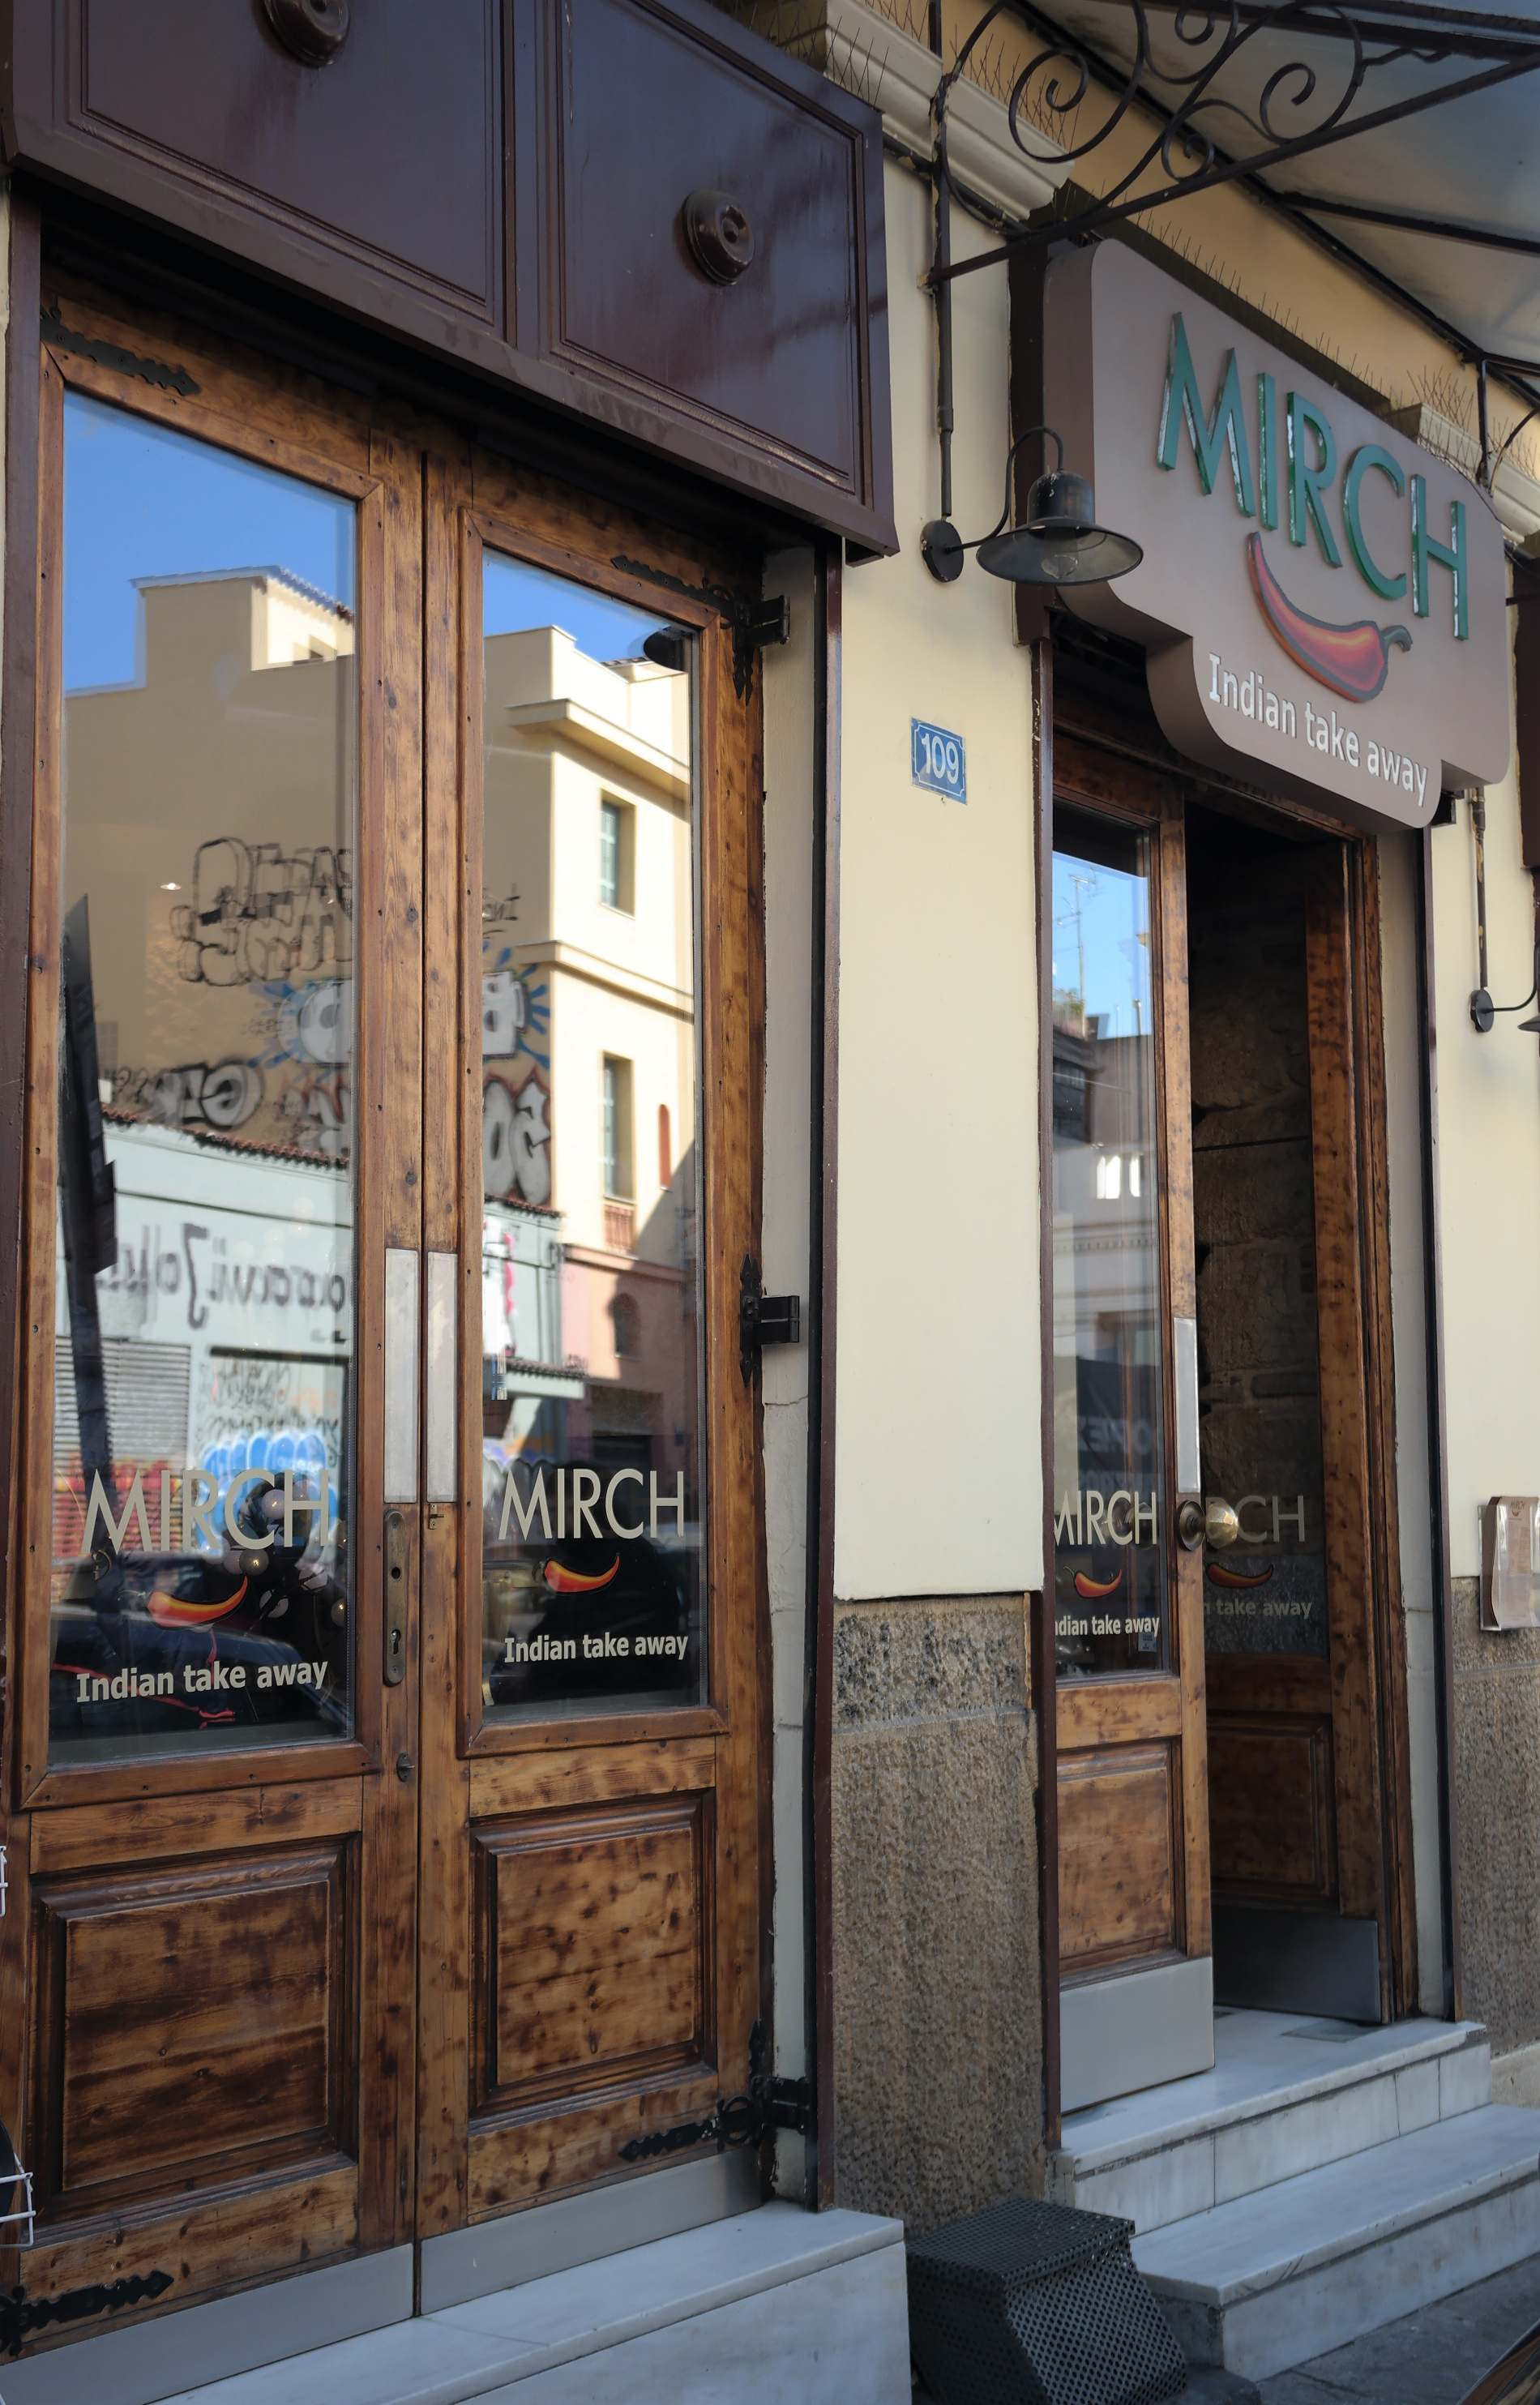 The entrance of Mirch street food restaurant in Athens. Source: Truevoyagers